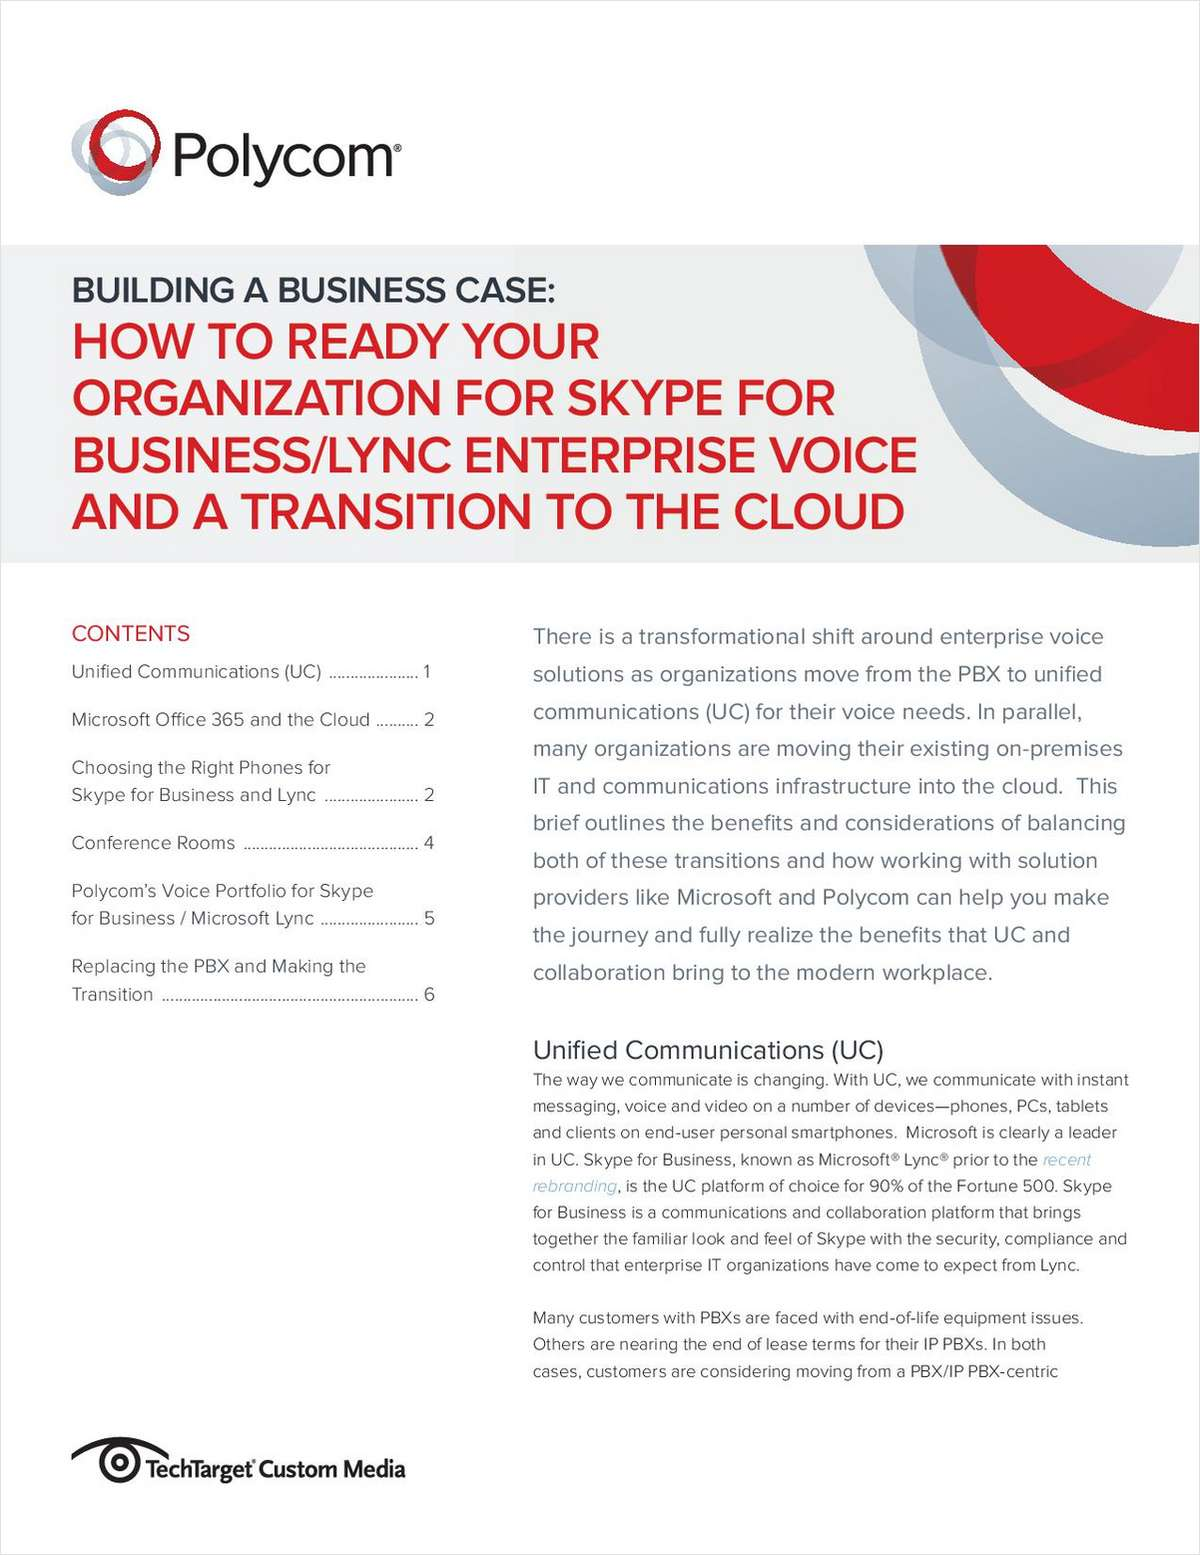 How to Ready Your Organization for Skype for Business